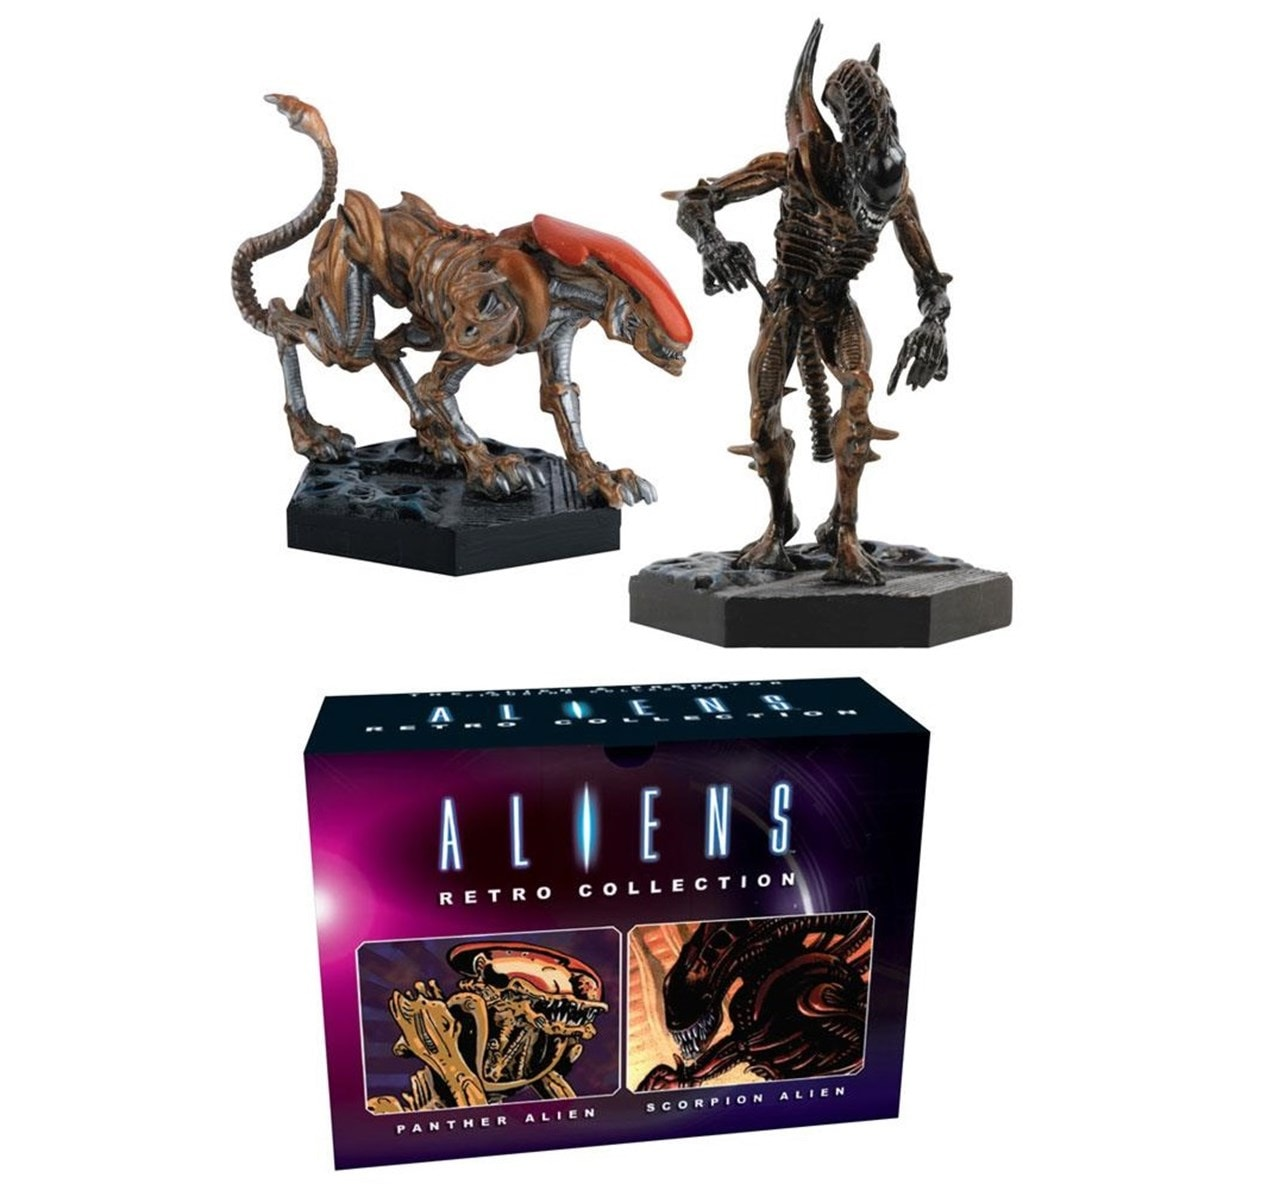 Alien: Panther And Scorpion Action Figures - 1